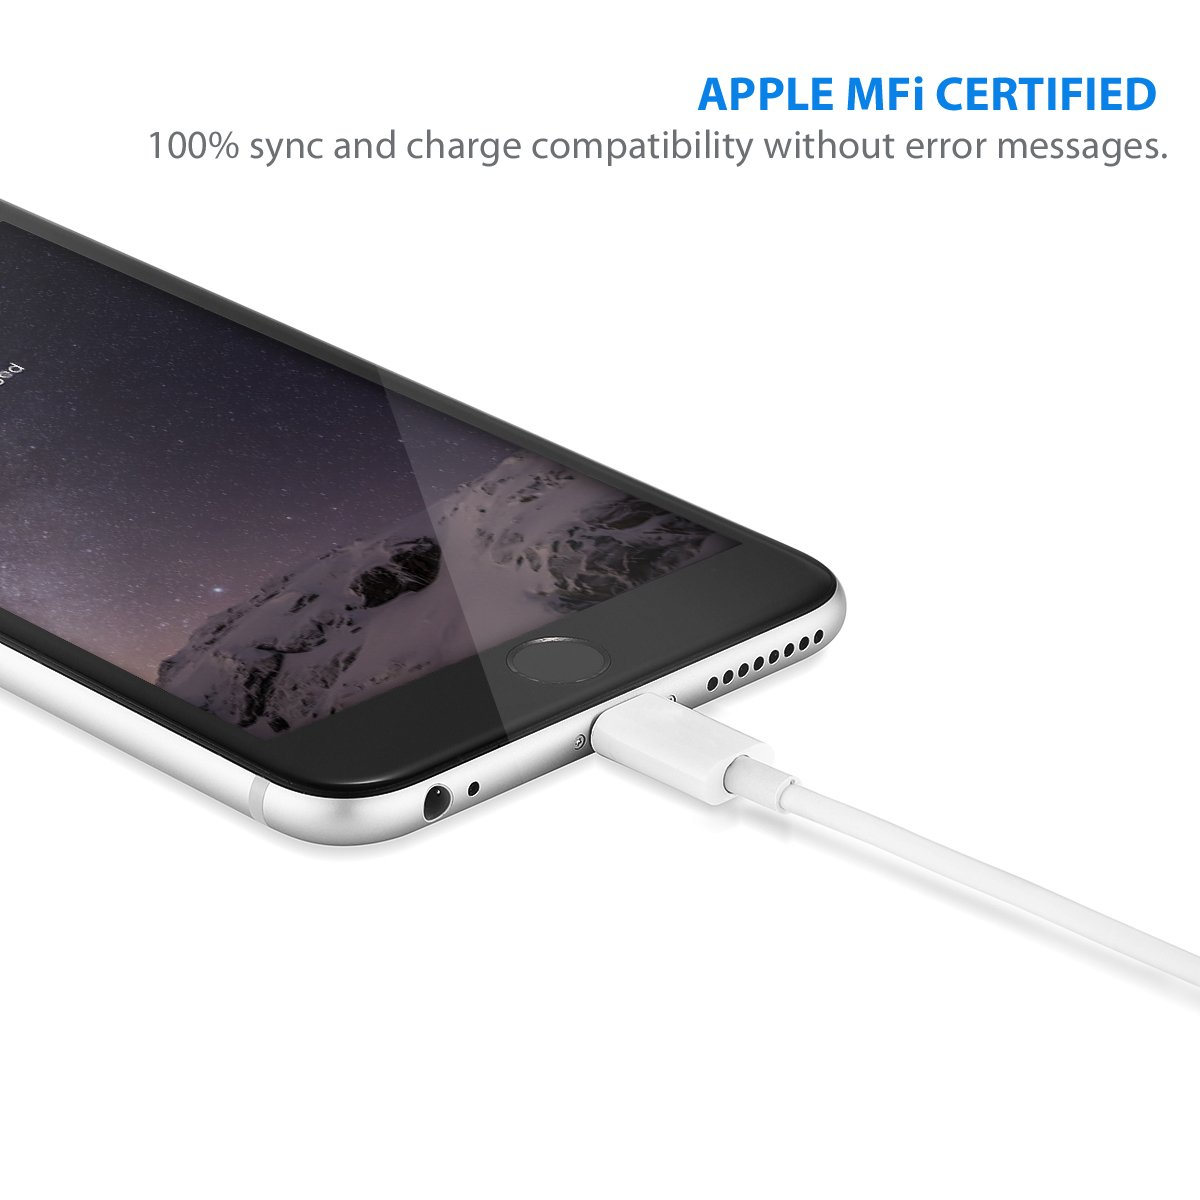 Certified Poweradd Lightning Charge iPhone Image 3